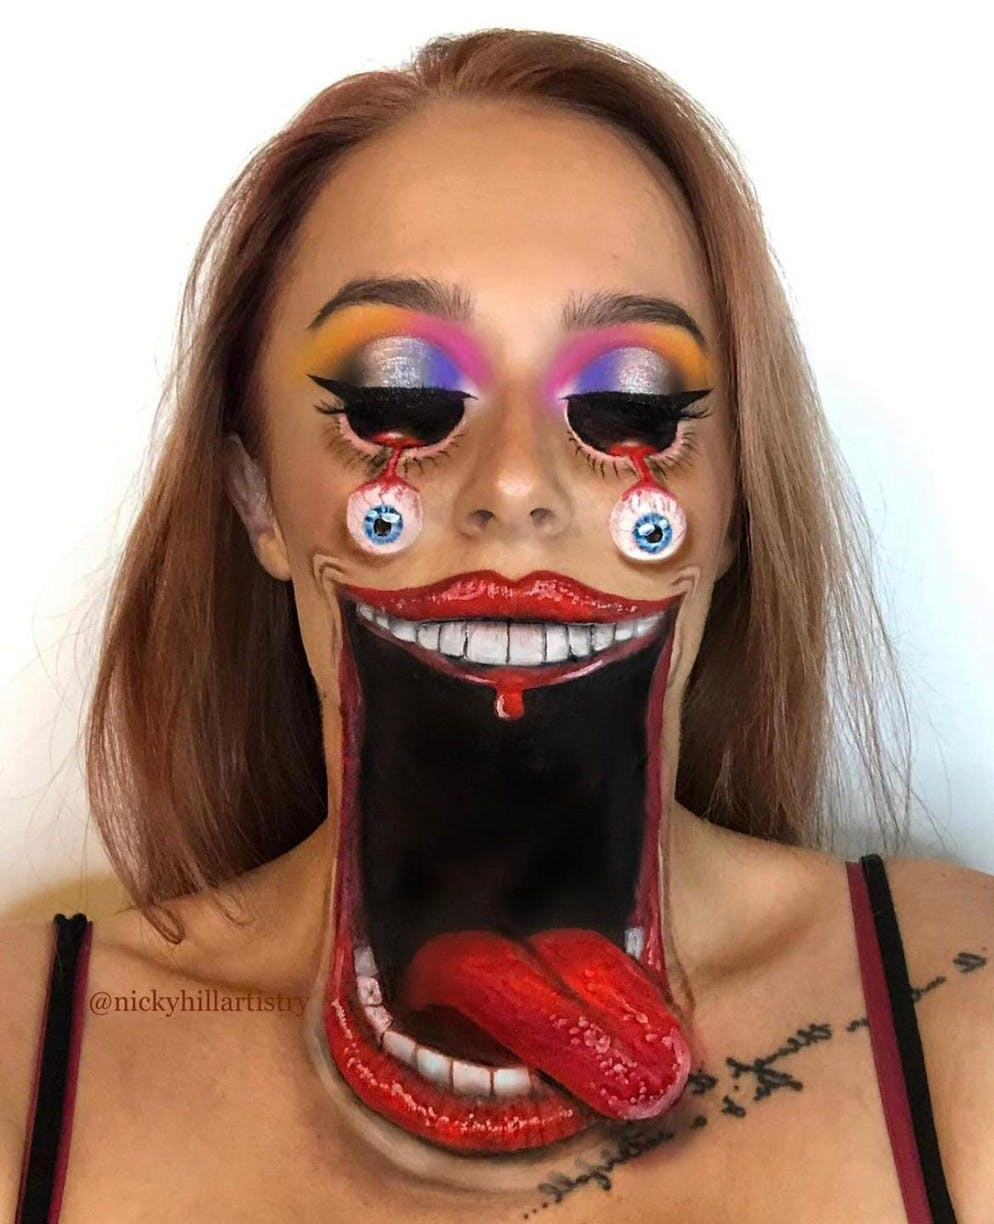 A gifted British make-up artist can transform herself into celebrities.   Nicky Hill, 27, from Ashton-under-Lyne, Manchester, has used her skills with a brush to recreate the features of Adele, Angelina Jolie, Boris Johnson and Donald Trump.   Nicky says the Covid-19 pandemic found her unable to do her usual work, so she has used her abilities to use her face as a canvas.   Her work not only includes famous faces, but wacky designs featuring bananas, Spider-Man, a snake and even a mouse appearing in her cheek.  Where: Manchester, United Kingdom When: 25 Mar 2021 Credit: Nicky Hill/Cover-Images.com  **Editorial use only**